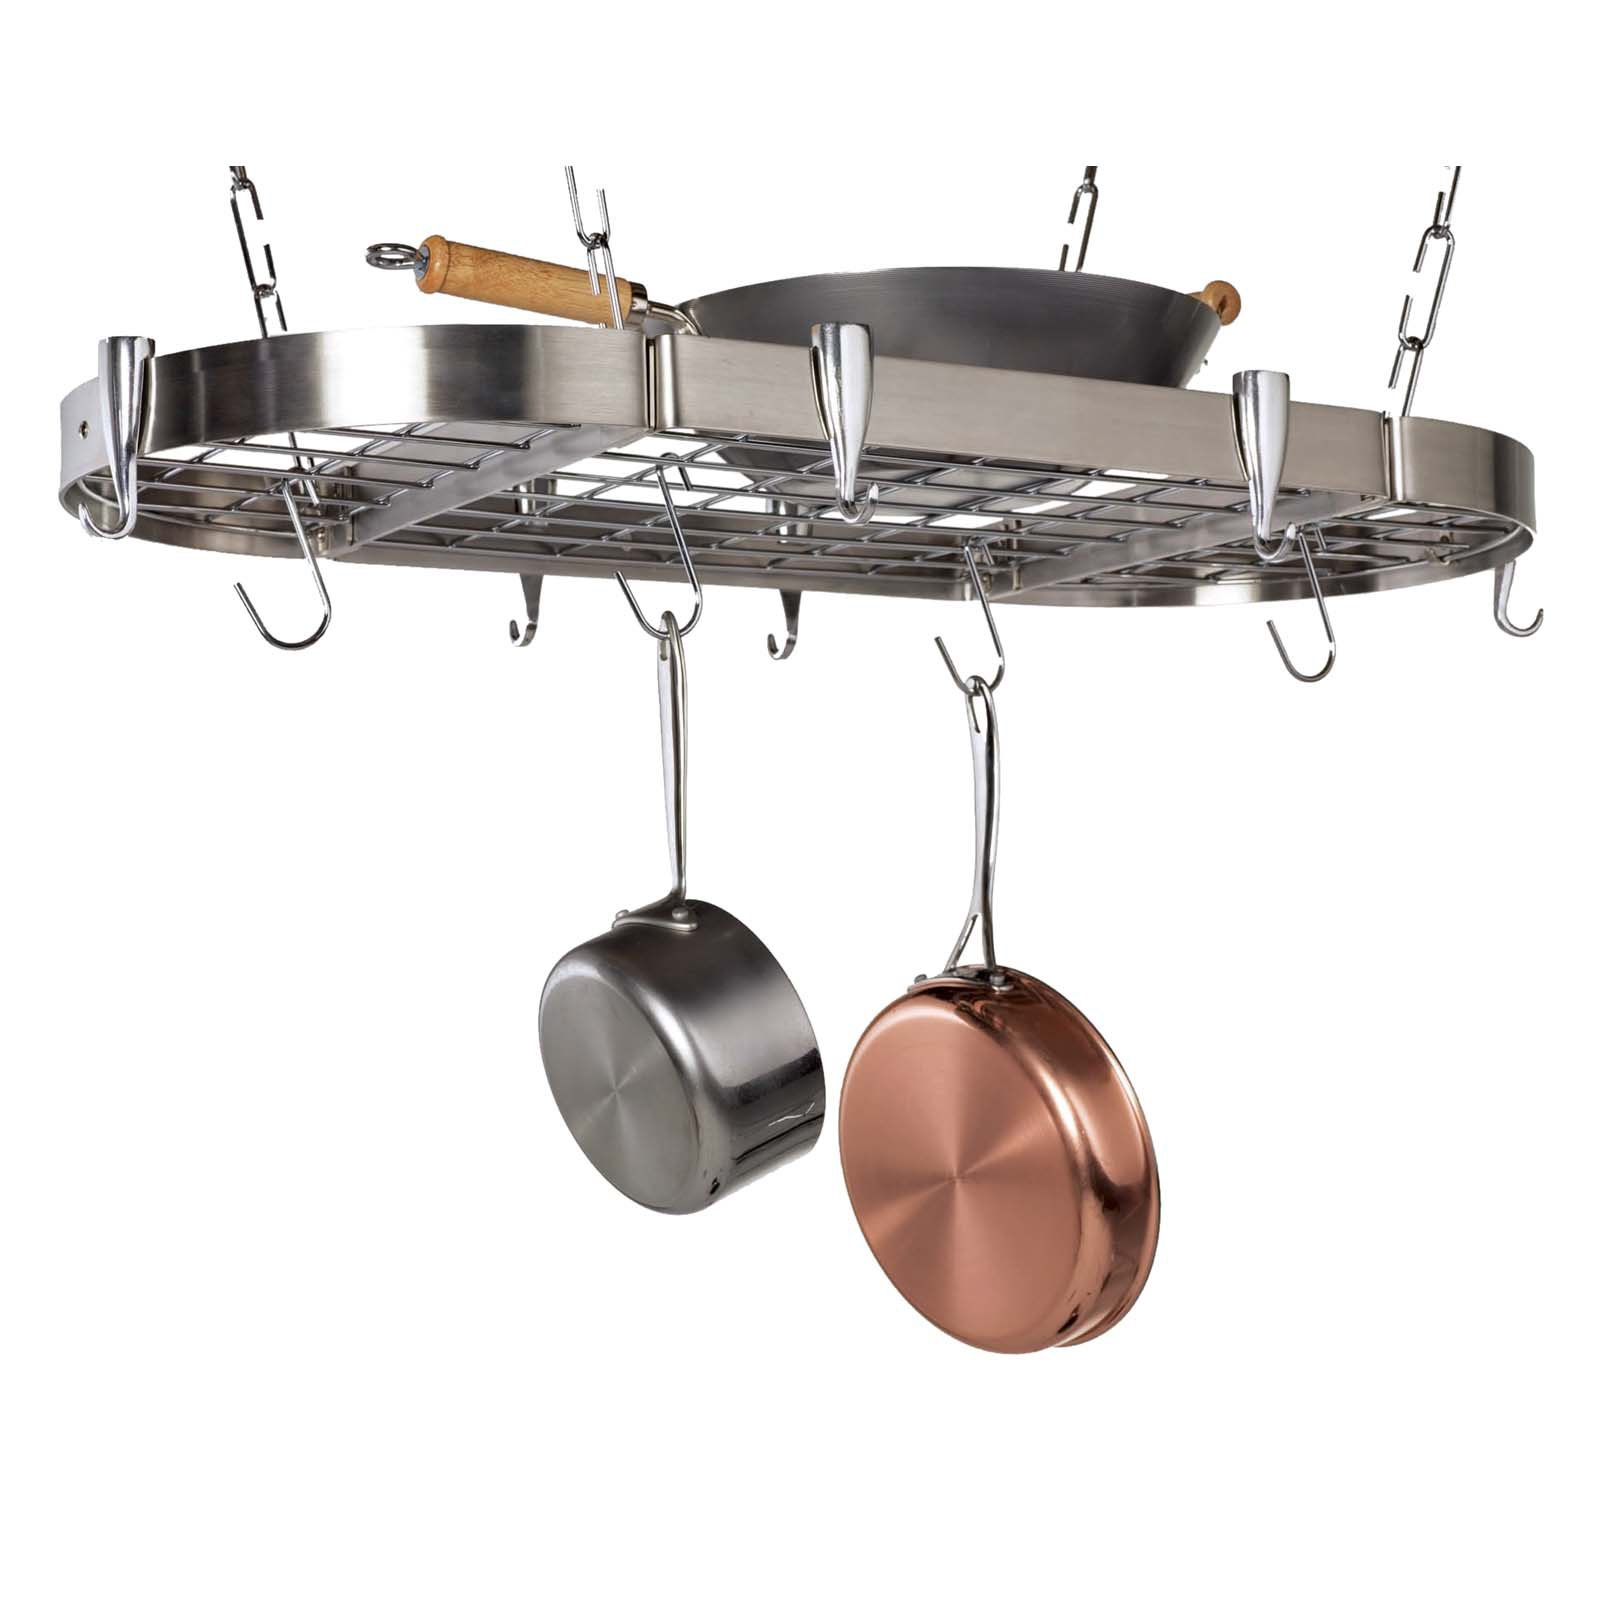 Carta Stainless Steel Oval Pot Rack by Group5 Mktg/Concept Housewares